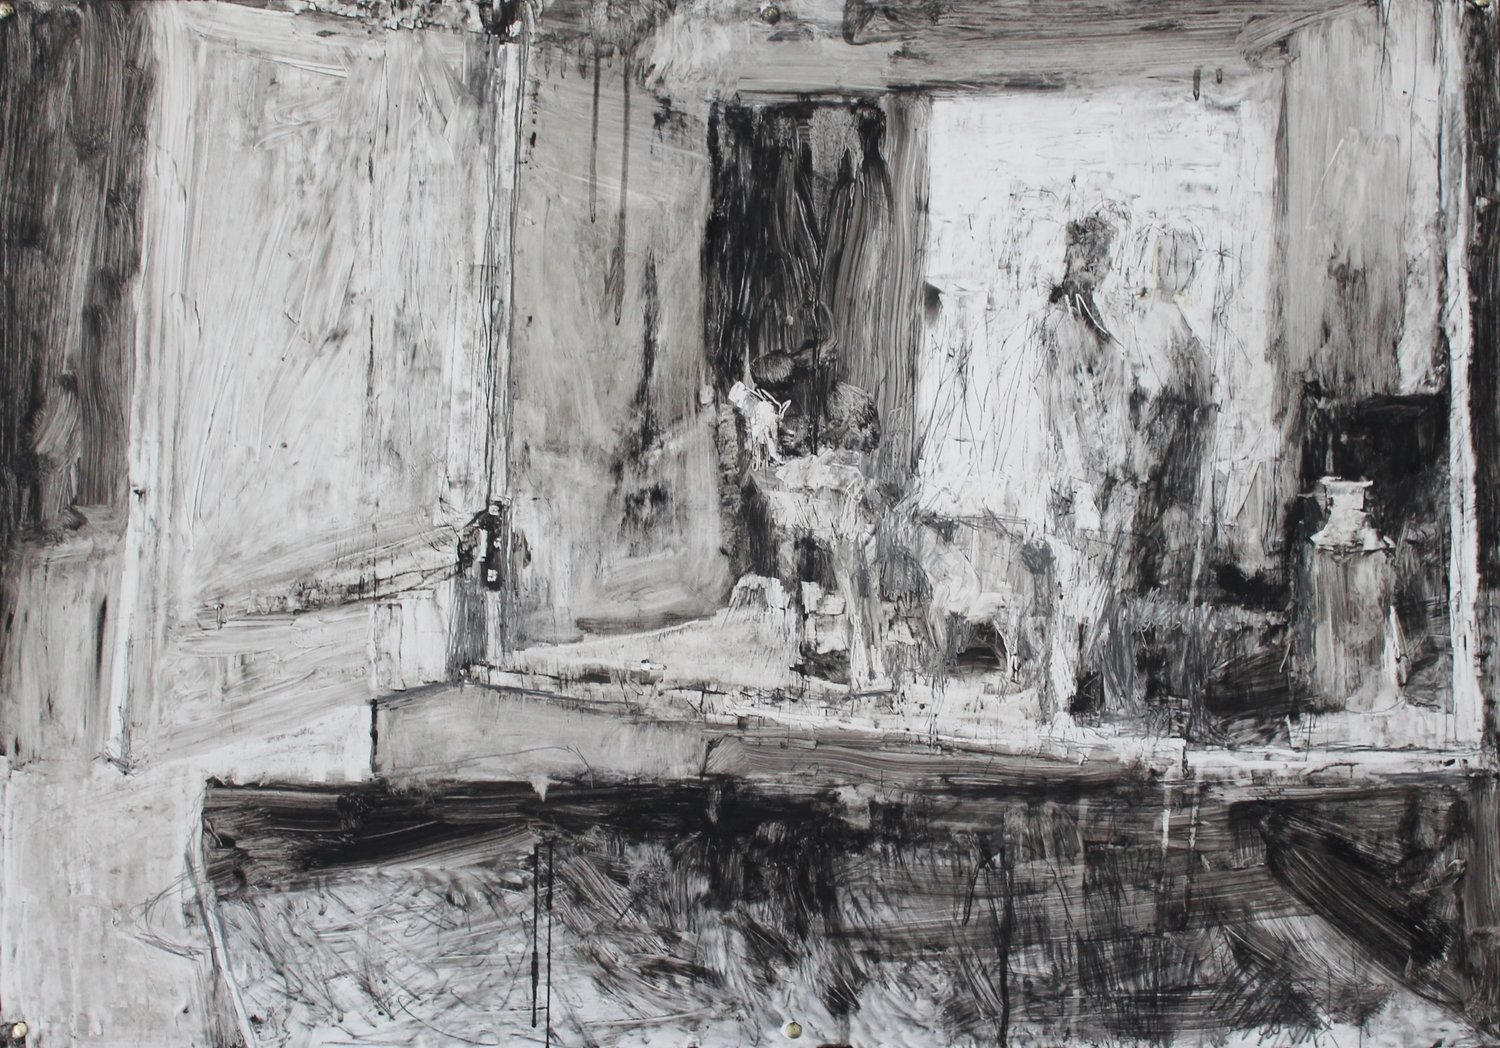 'Camel and Figure Still Life', Craig Jefferson, Oilbar, graphite and soot on paper, 69 x 100 x 5 cm